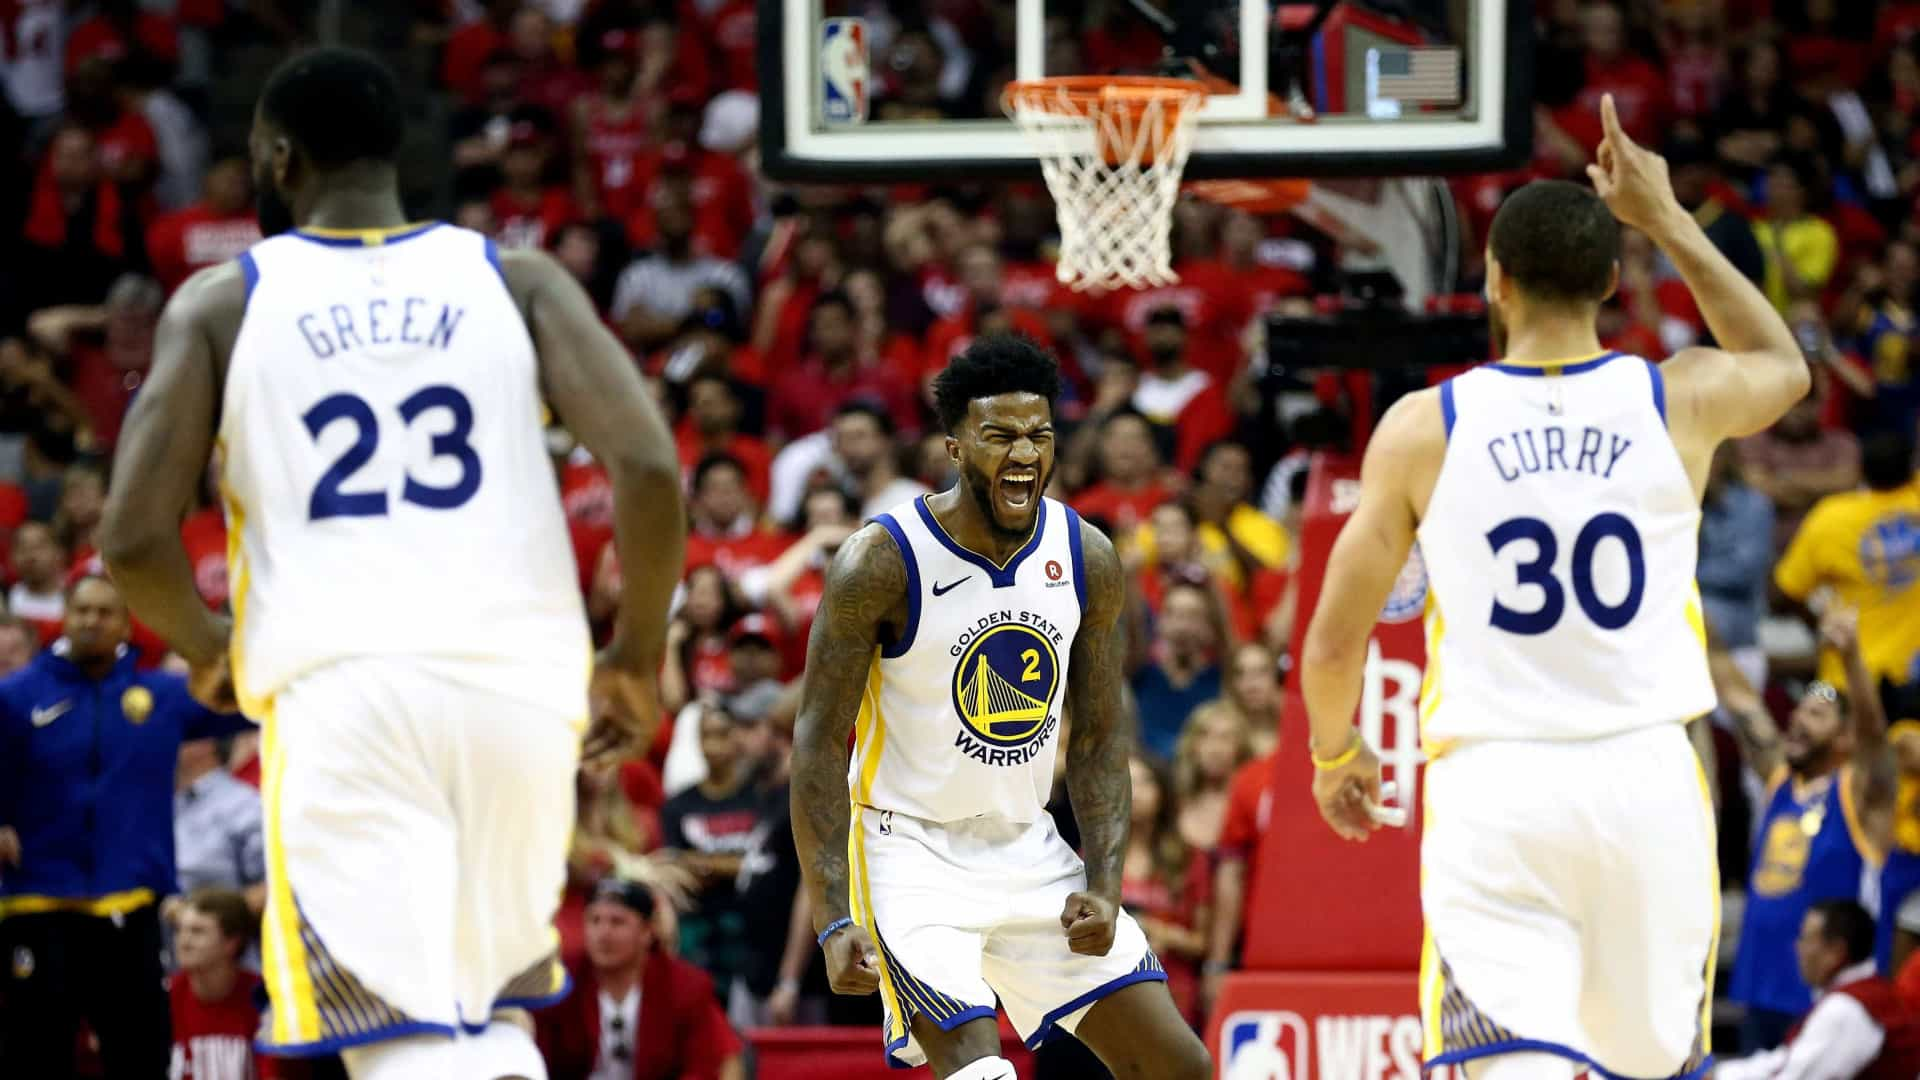 Golden State vence Houston e enfrenta Cleveland na final da NBA